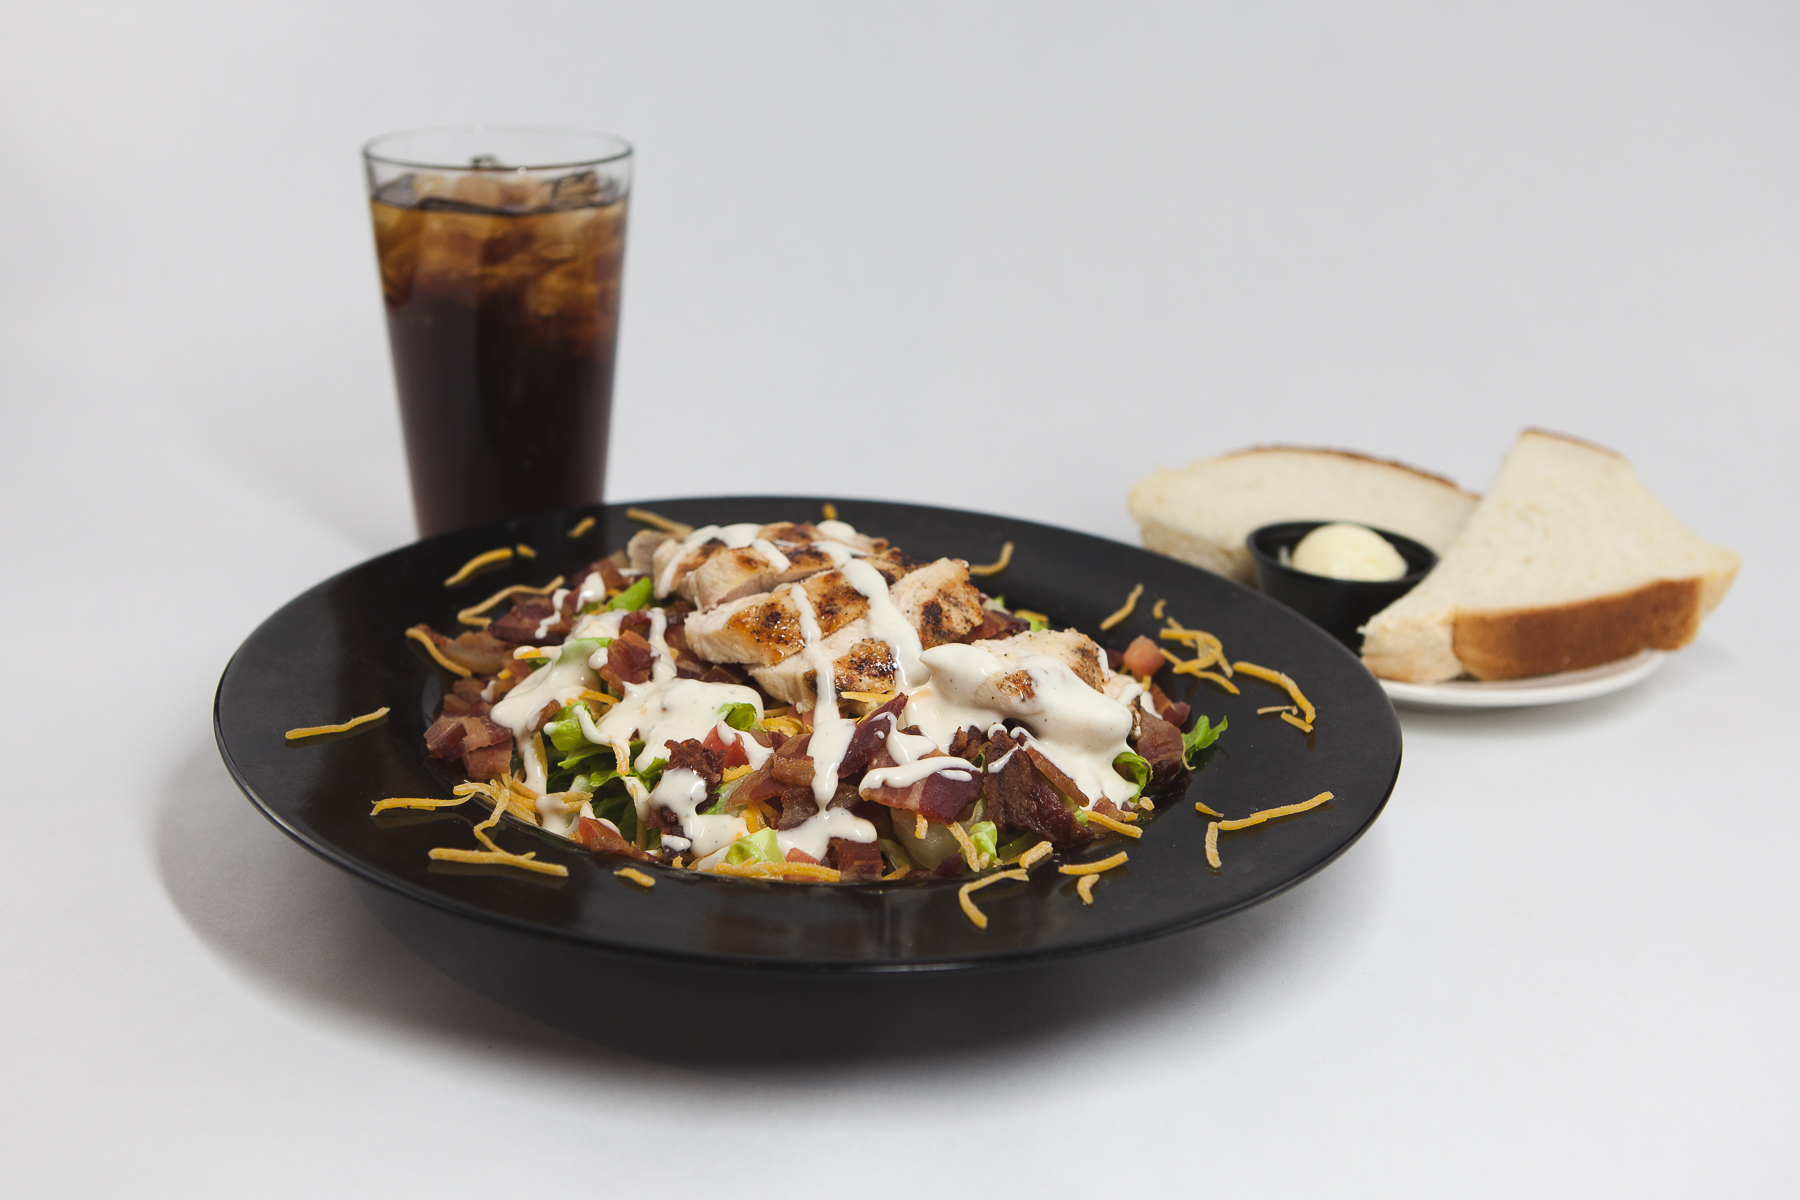 Food Photography for Tula's Northwoods Cafe - Southwest Salad